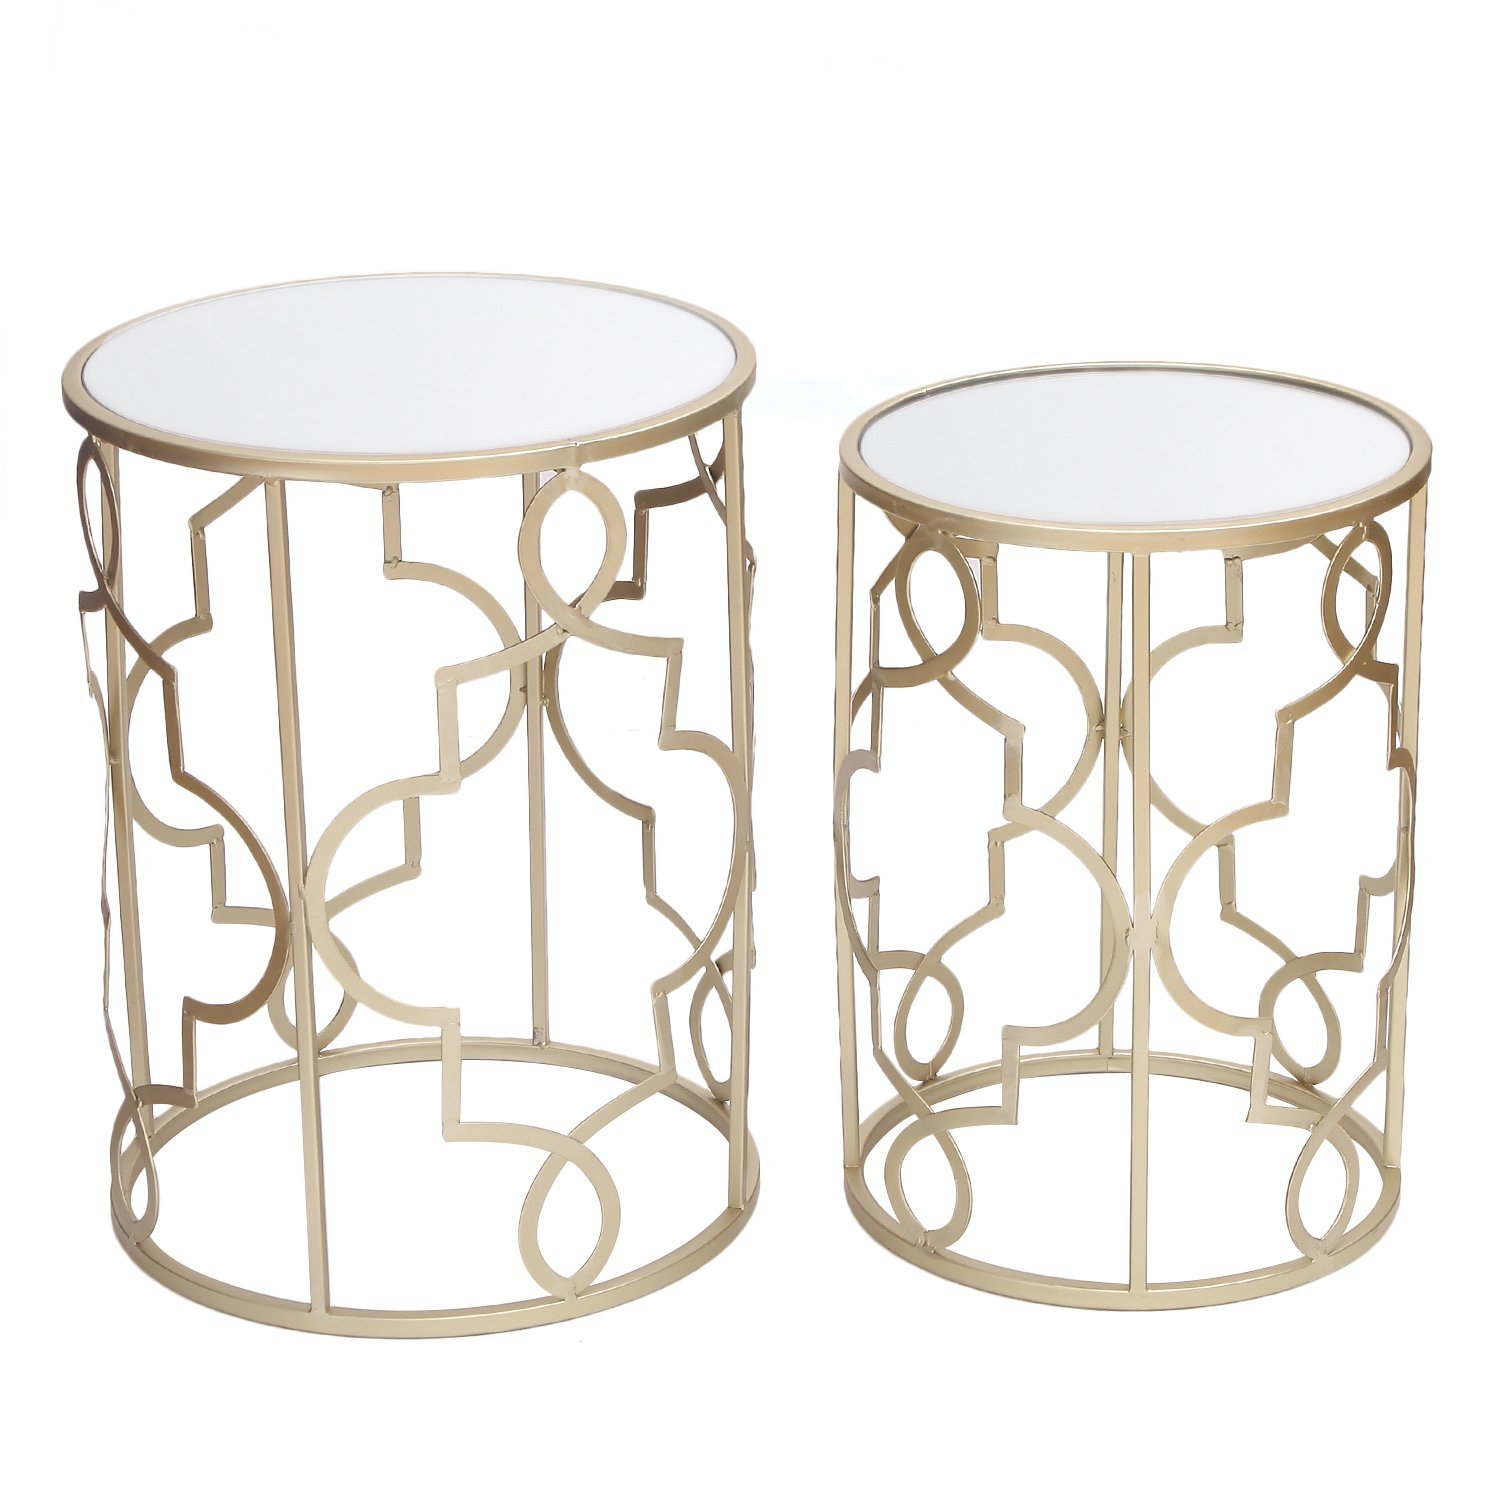 Adeco FT0126 Classic Side Set (2 Pcs)-Gold Nesting Tables, by Adeco